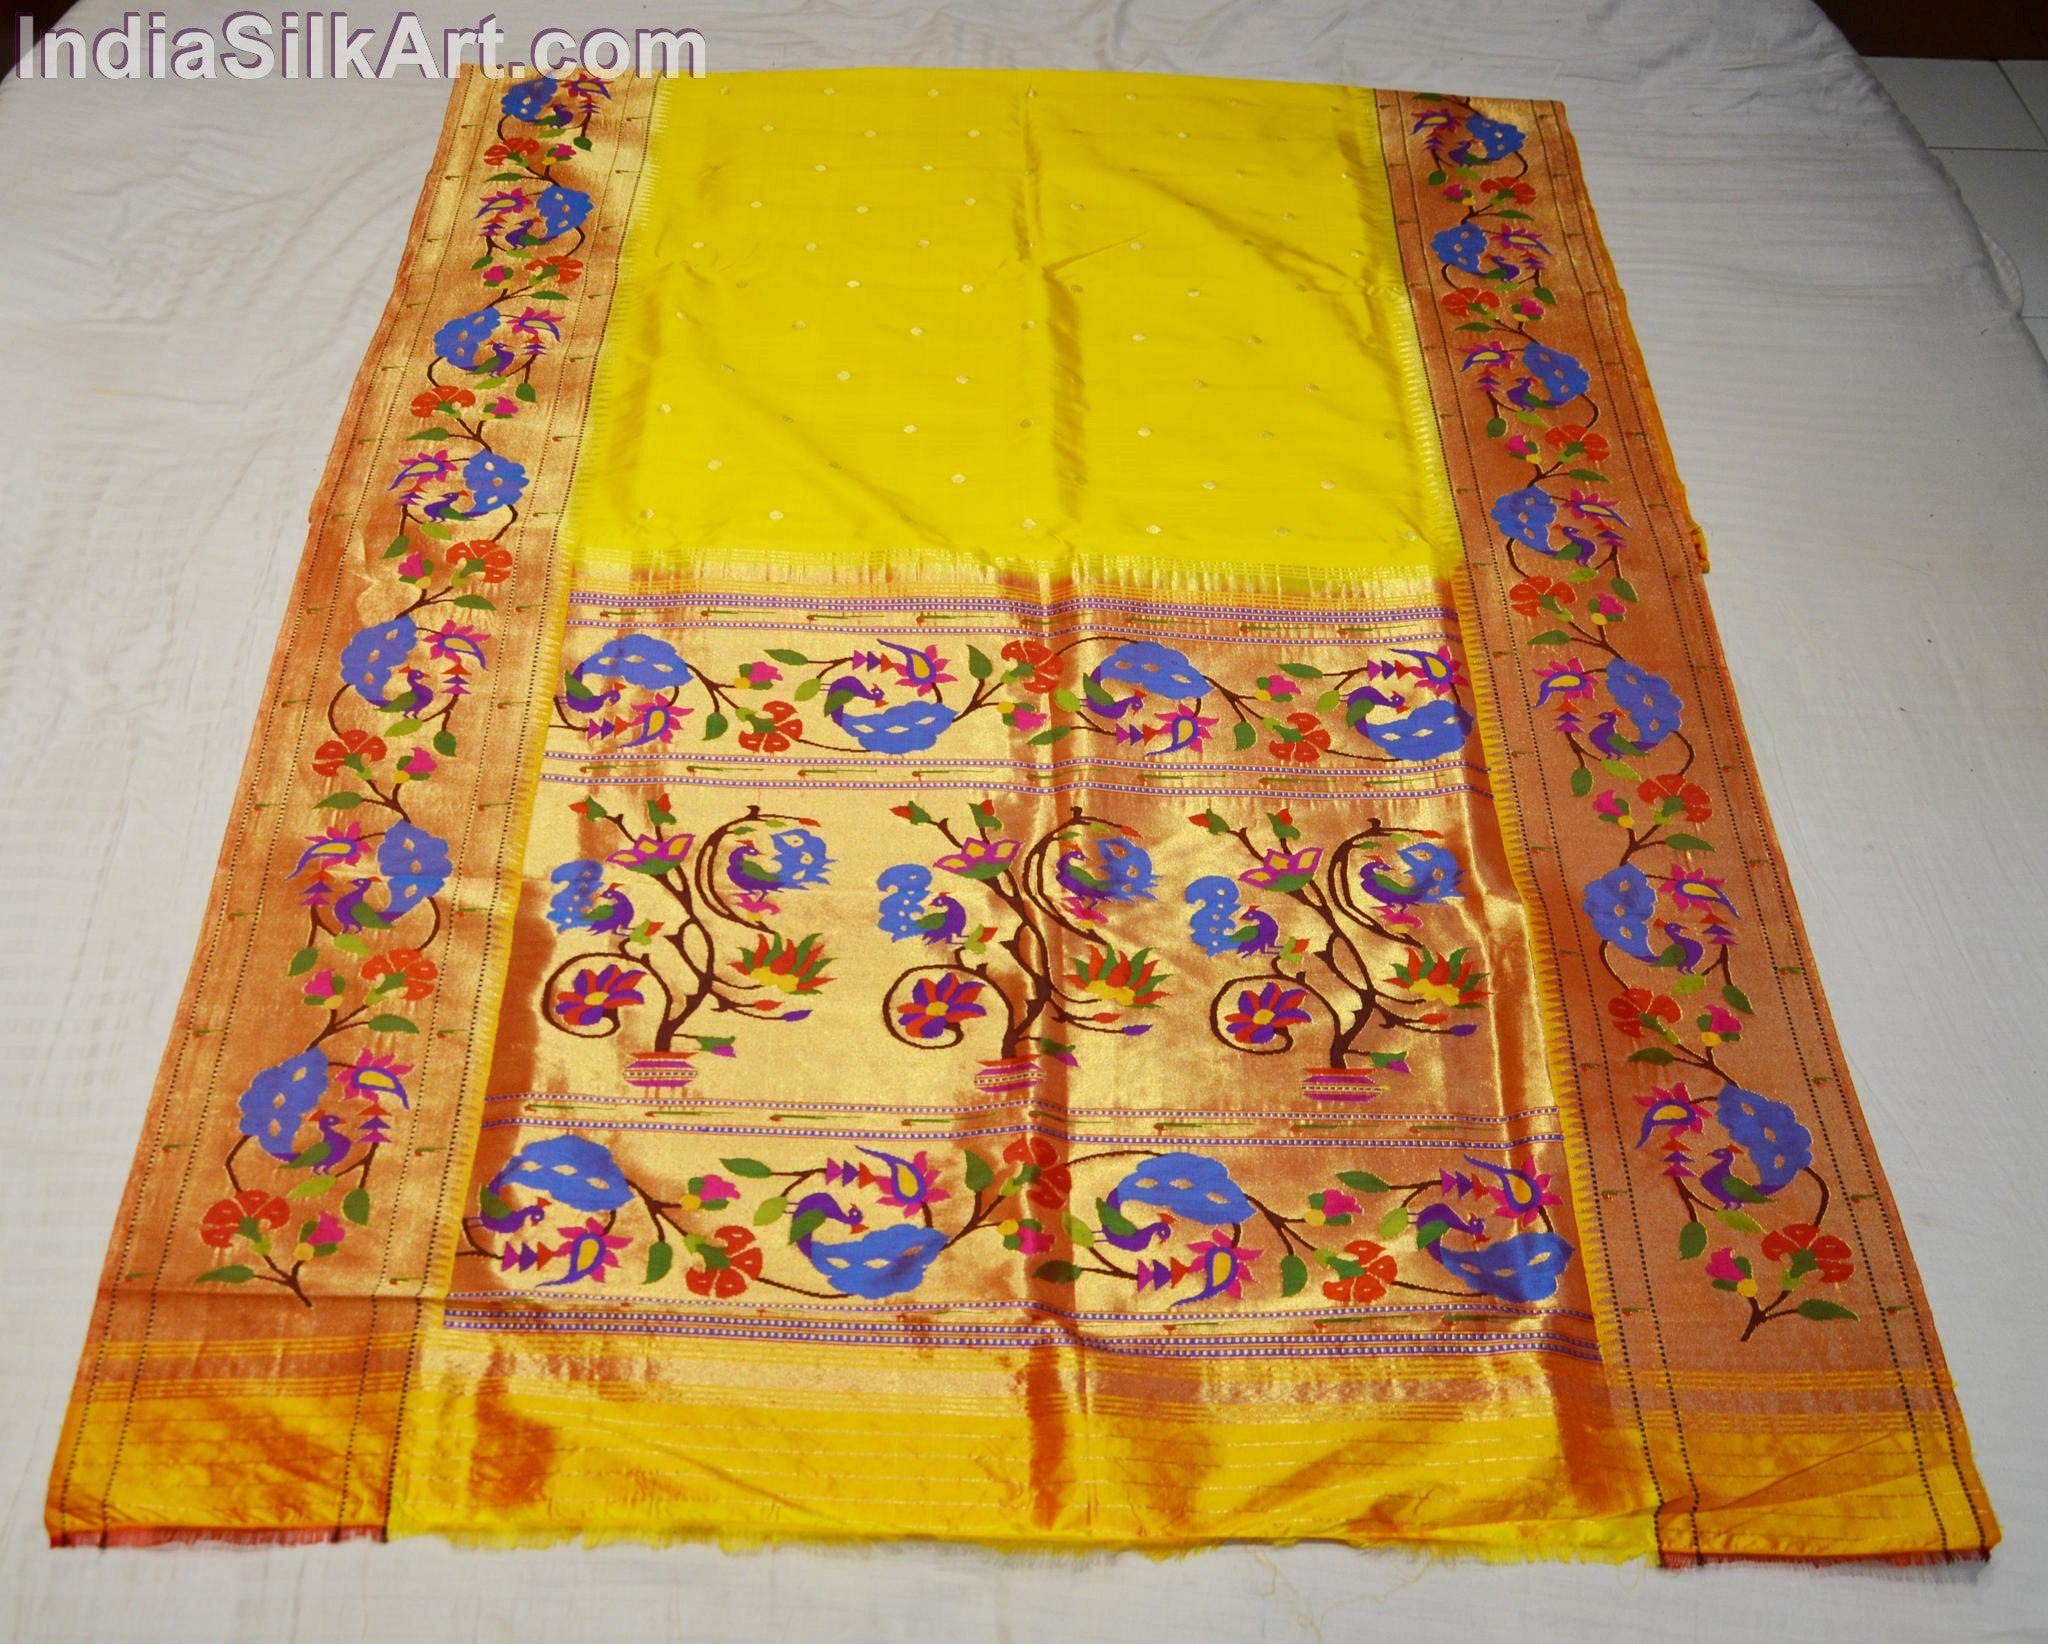 Paithani - Silk Sari - Hand Woven Brocade Pallu Sari - Lemon Yellow